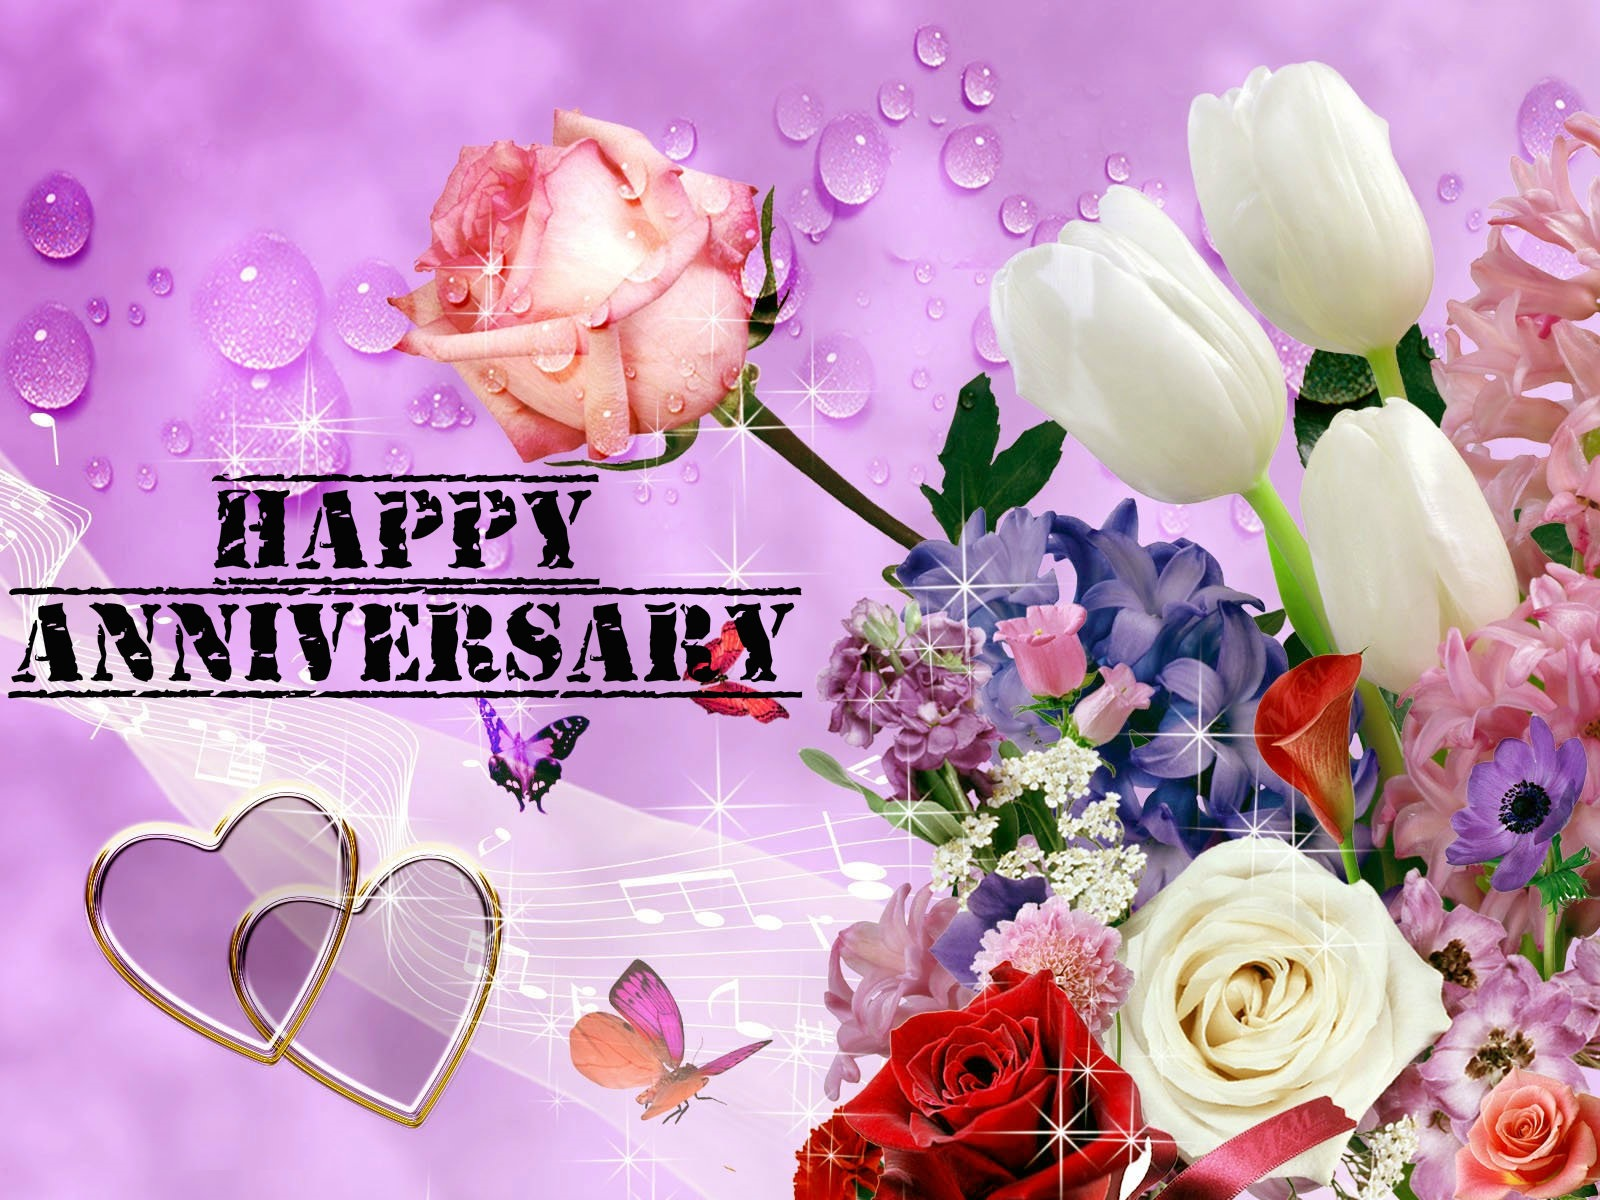 Cute Wallpapers First Initial Awesome Anniversary Pink Flowers Images Download